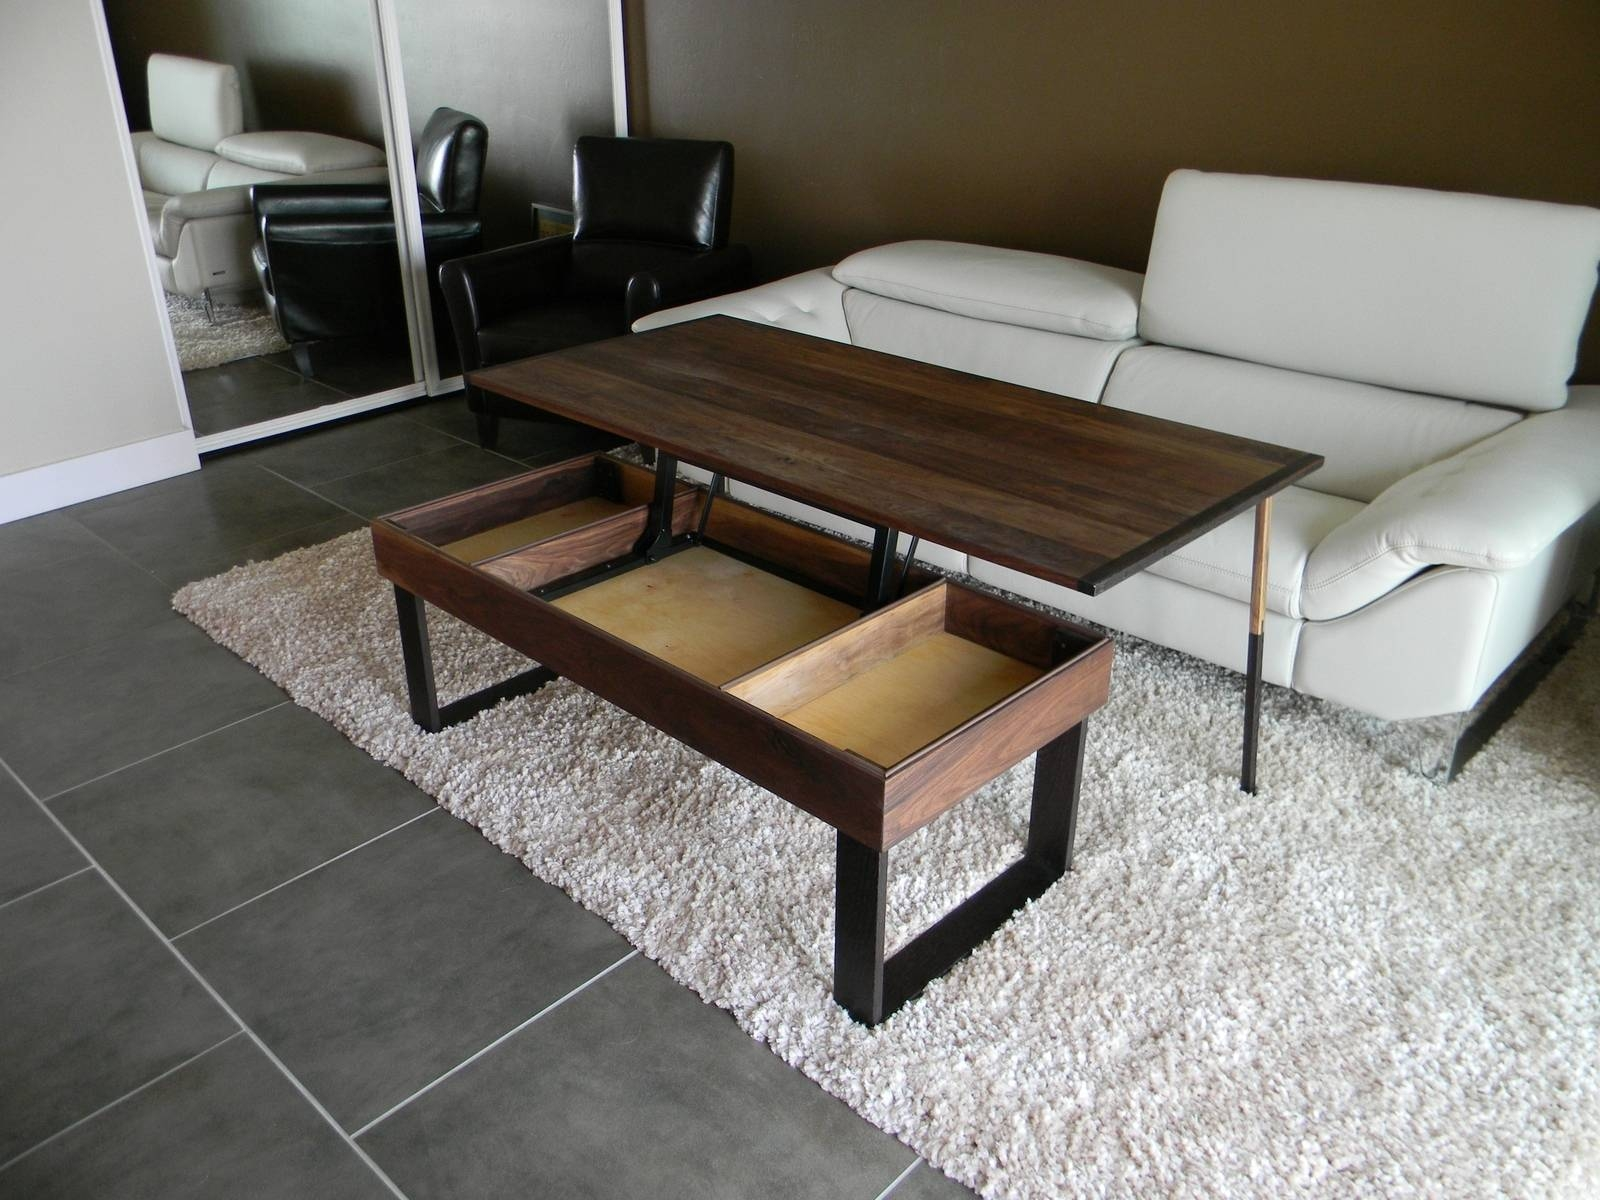 Coffee Table: Amusing Turner Lift Top Coffee Table Eespresso Lift pertaining to Lift Top Coffee Tables With Storage (Image 7 of 30)